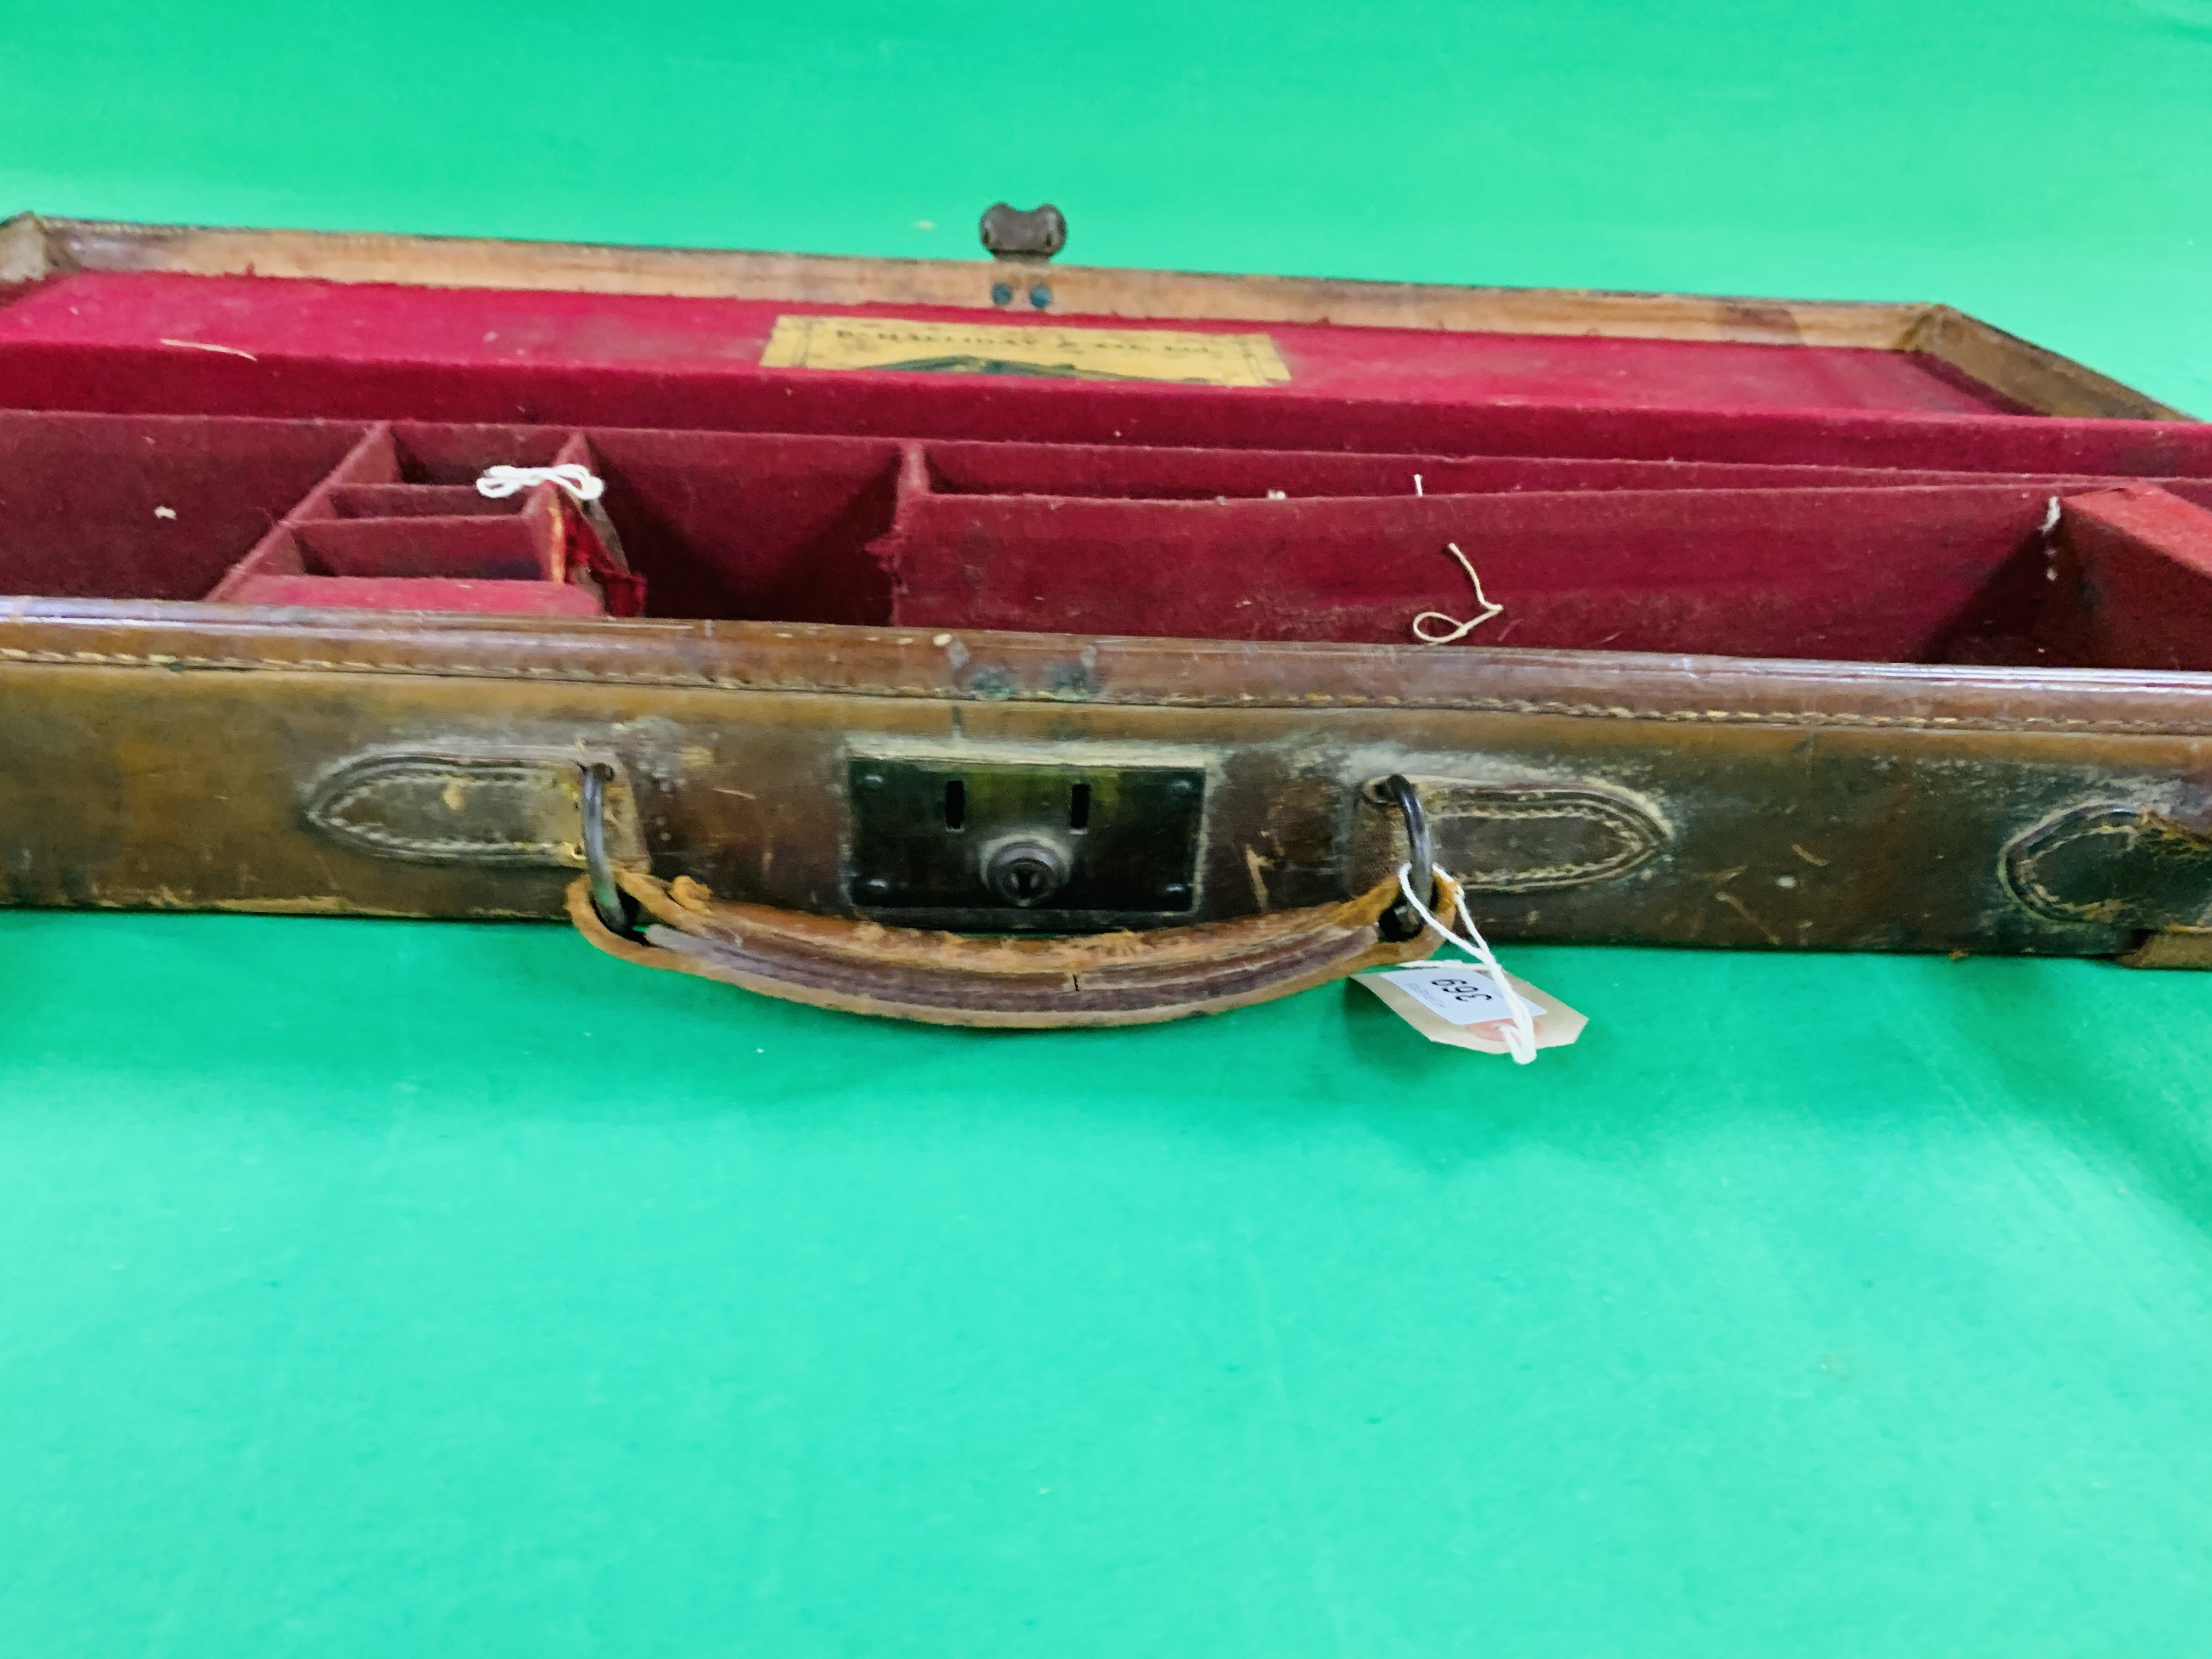 """OAK AND LEATHER 28 / 30"""" SIDE BY SIDE GUN CASE WITH B. HALLIDAY AND CO. LTD OF LONDON CASE LABEL. - Image 7 of 10"""